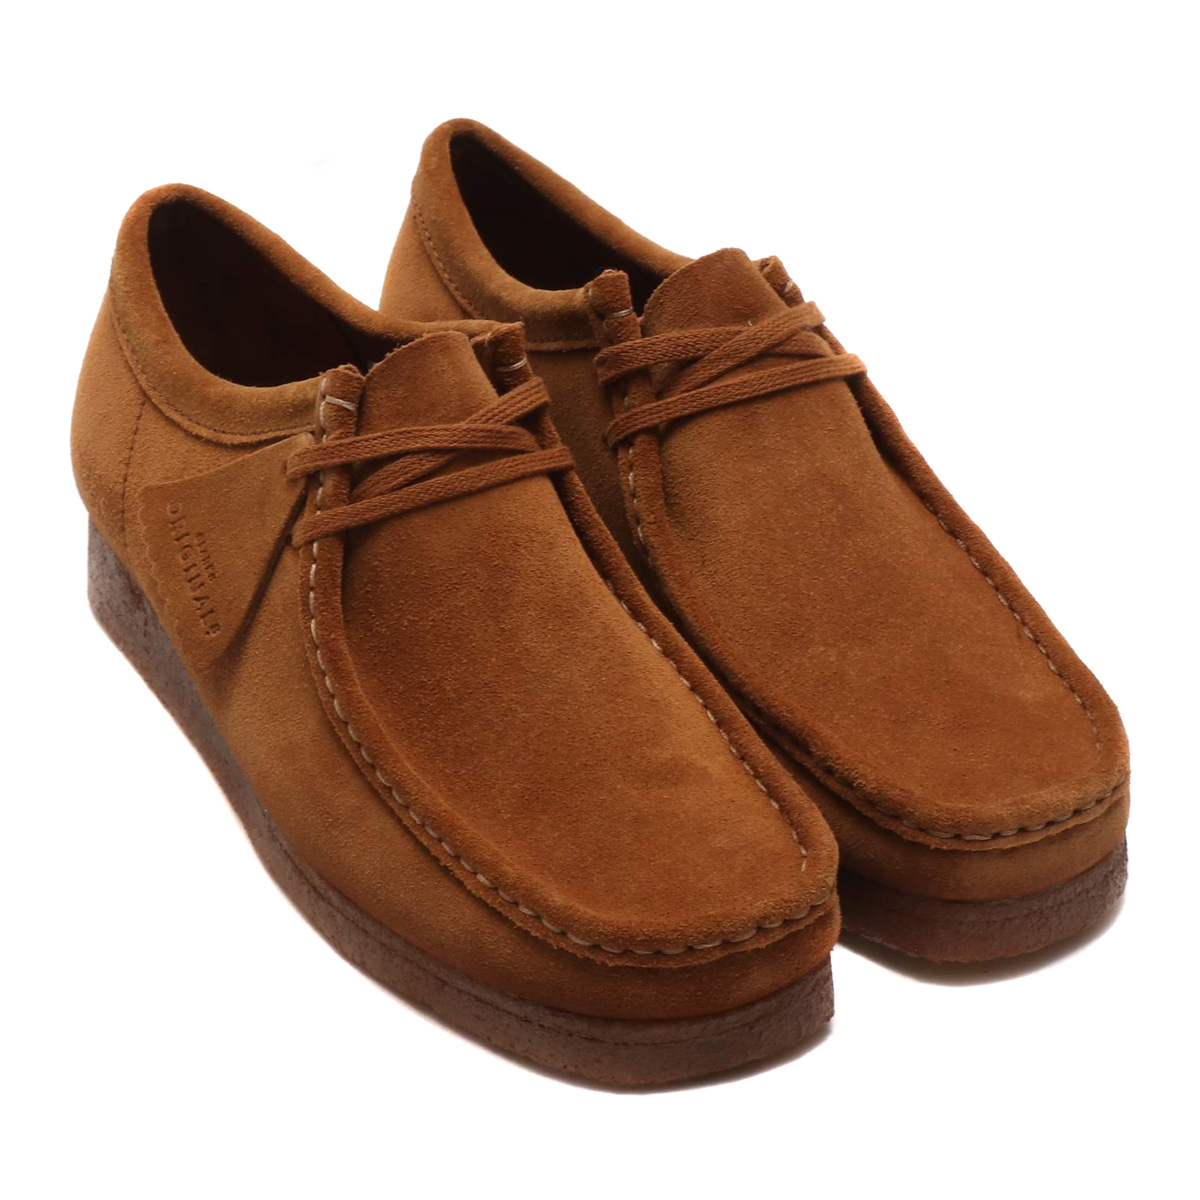 Clarks Wallabee (クラークス ワラビー)Cola Suede【メンズ ブーツ】19SS-I